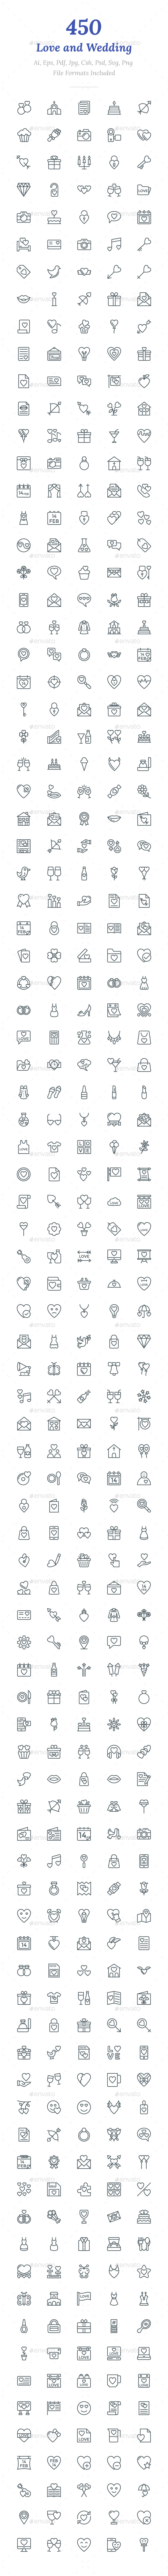 450 Love and Wedding Line Icons - Icons